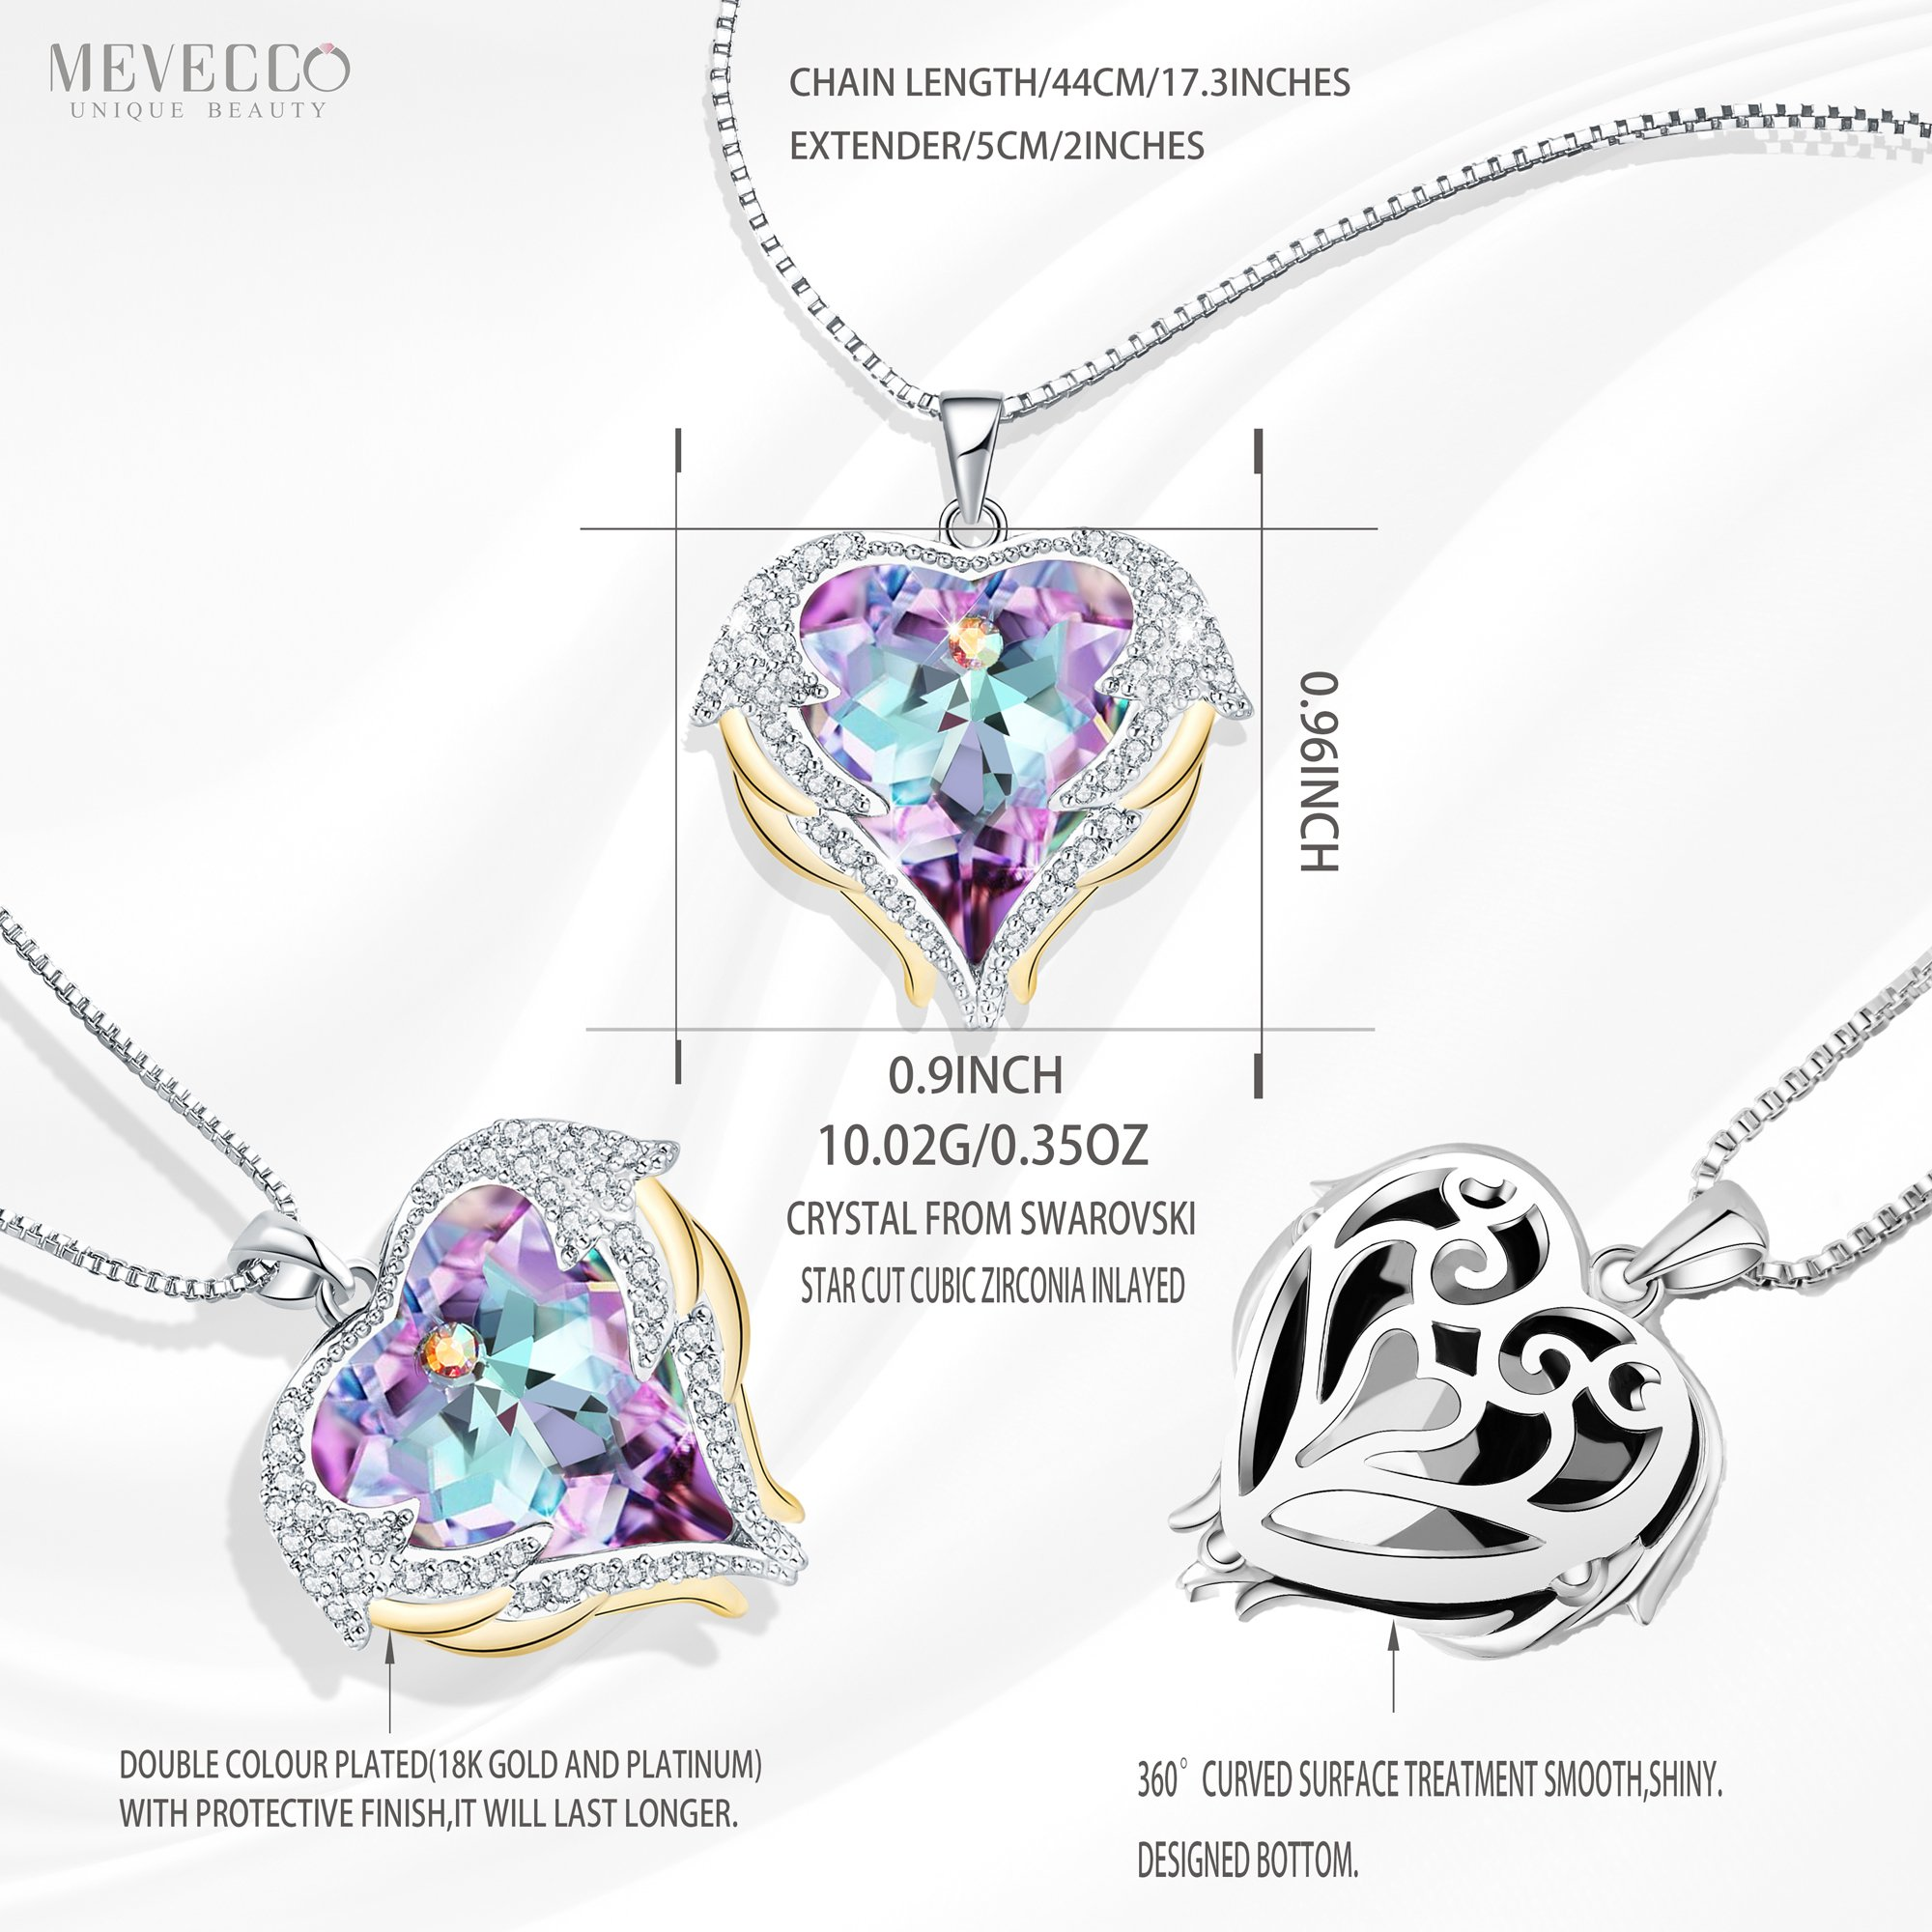 Mevecco ''Heart Of the Ocean'' Heart Pendant Necklace Made with Swarovski Crystals-NK10-Vol Light by Mevecco (Image #2)